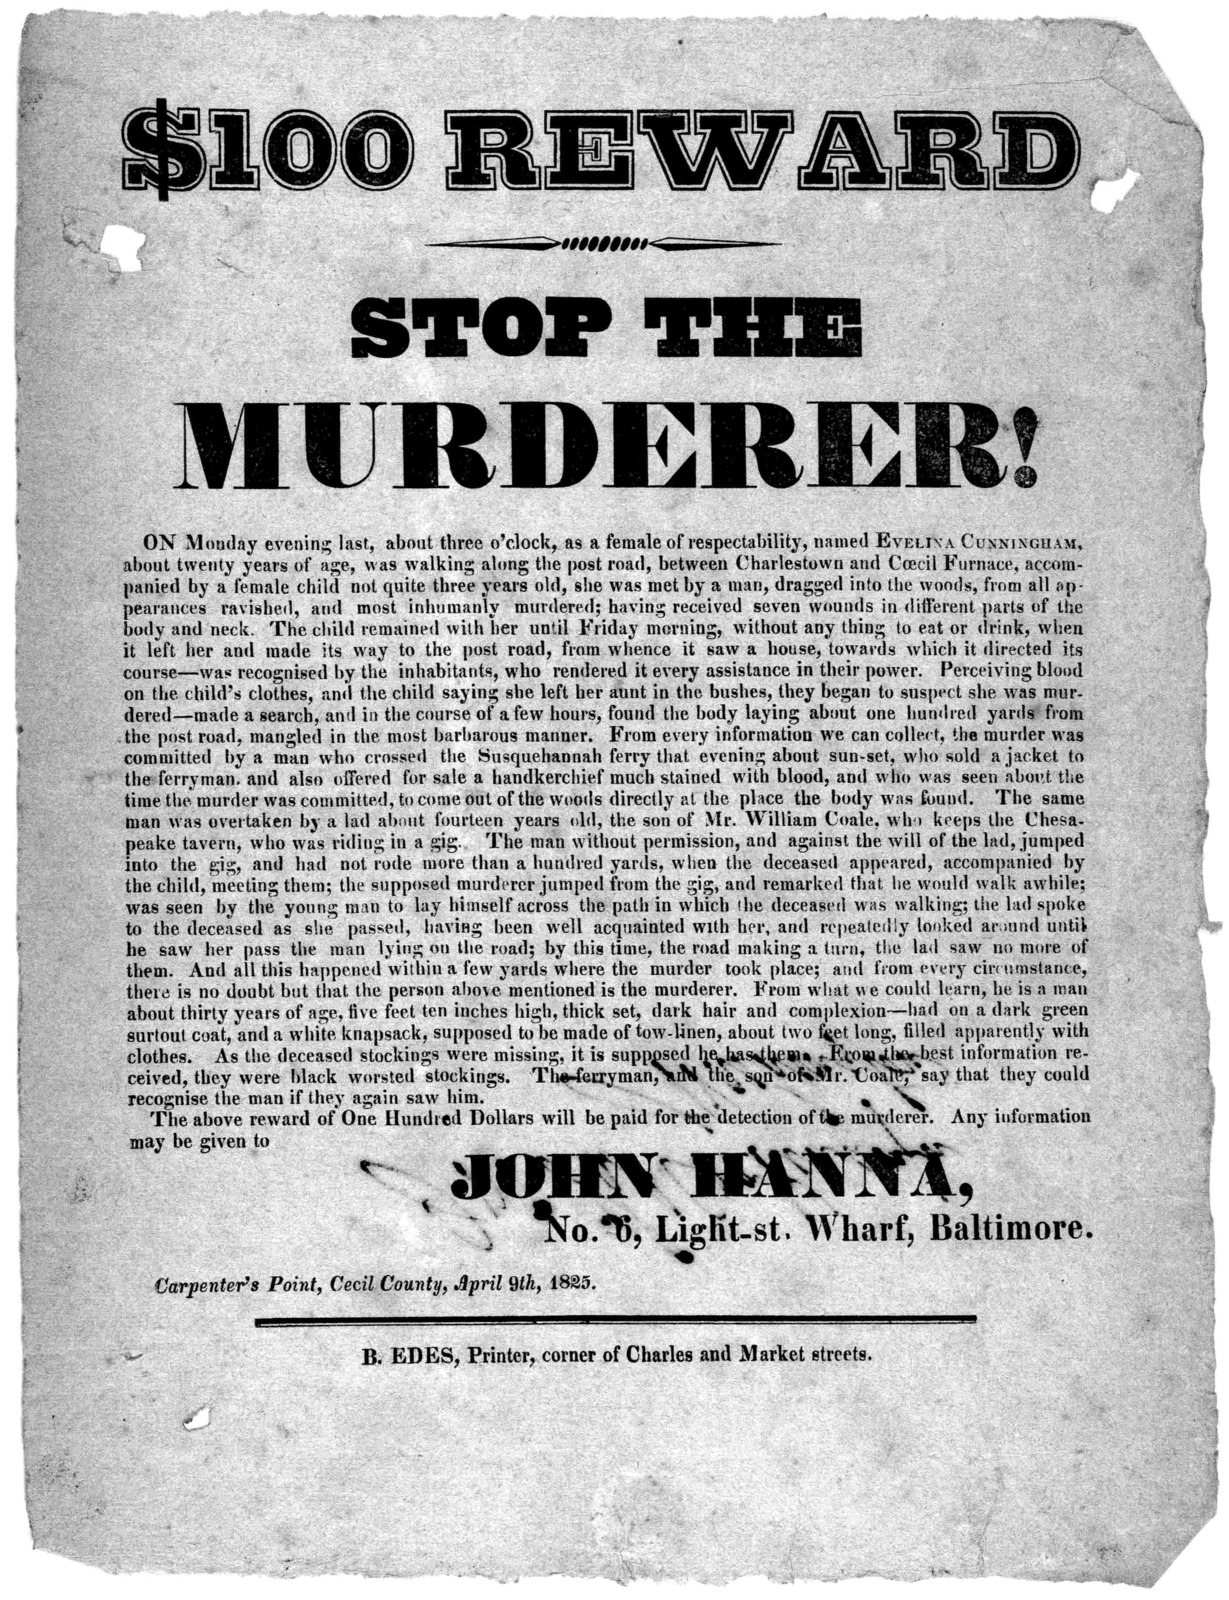 $100 reward Stop the murderer! On Monday evening last, about three o'clock, as a female of respectability, named Evelina Cunningham, about twenty years of age, was walking along the post road ... she was met by a man, dragged into the woo